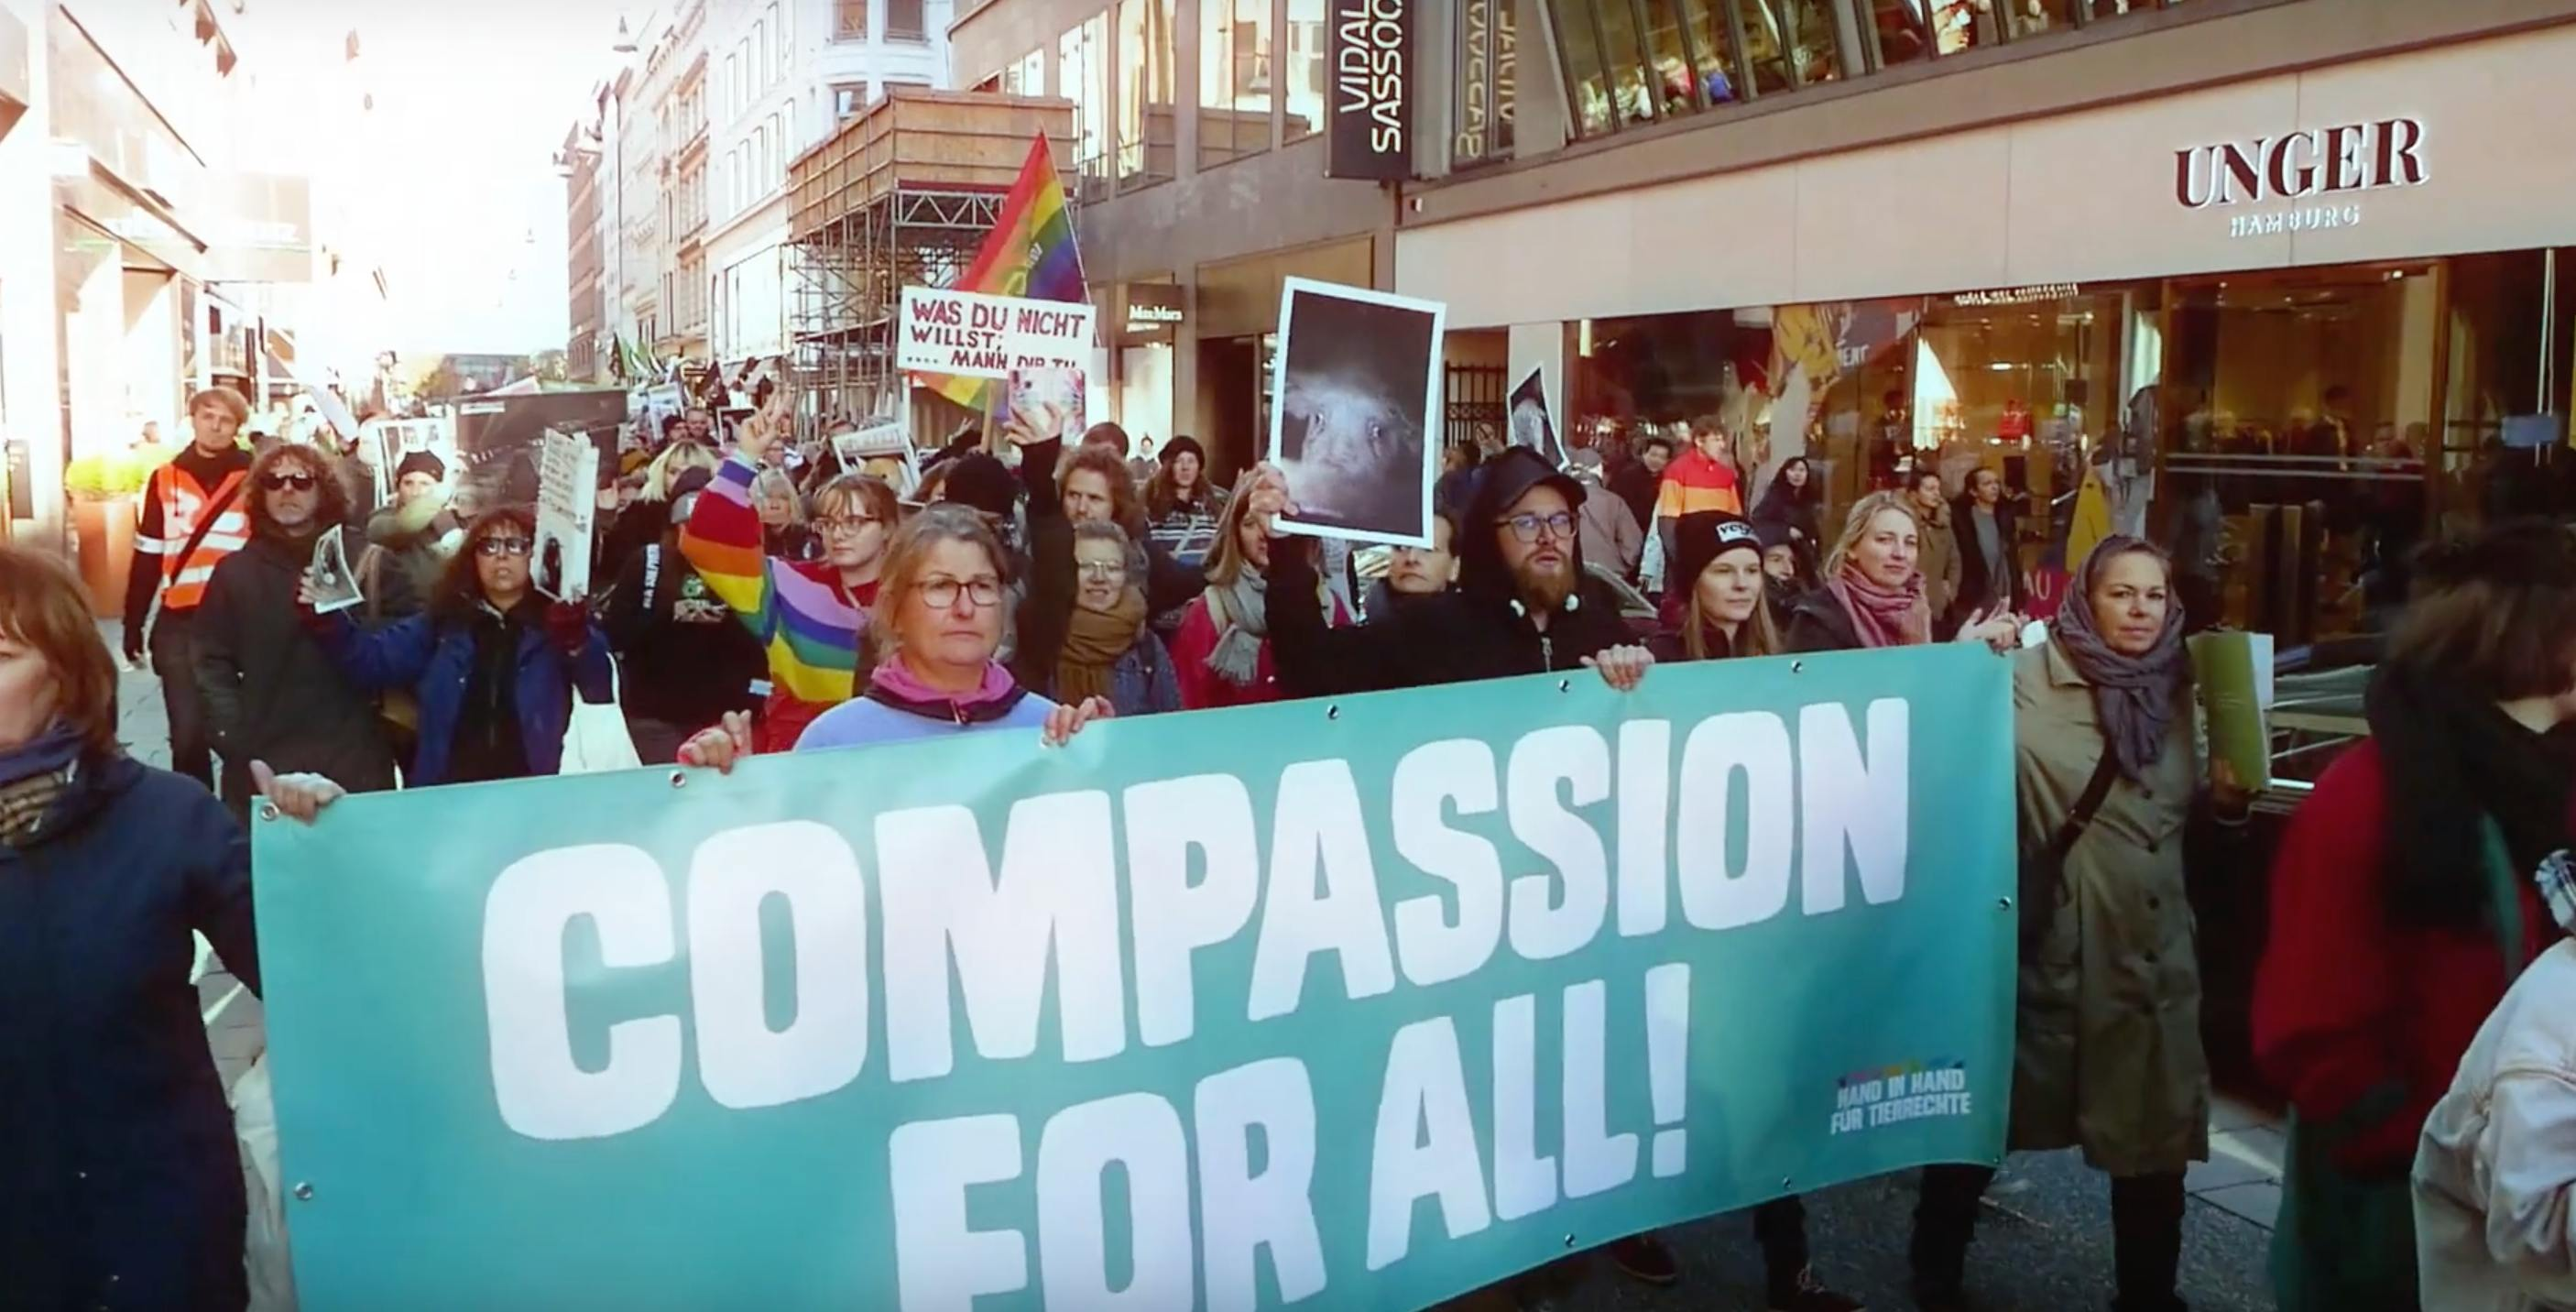 Vegan activists in Germany march for animal rights